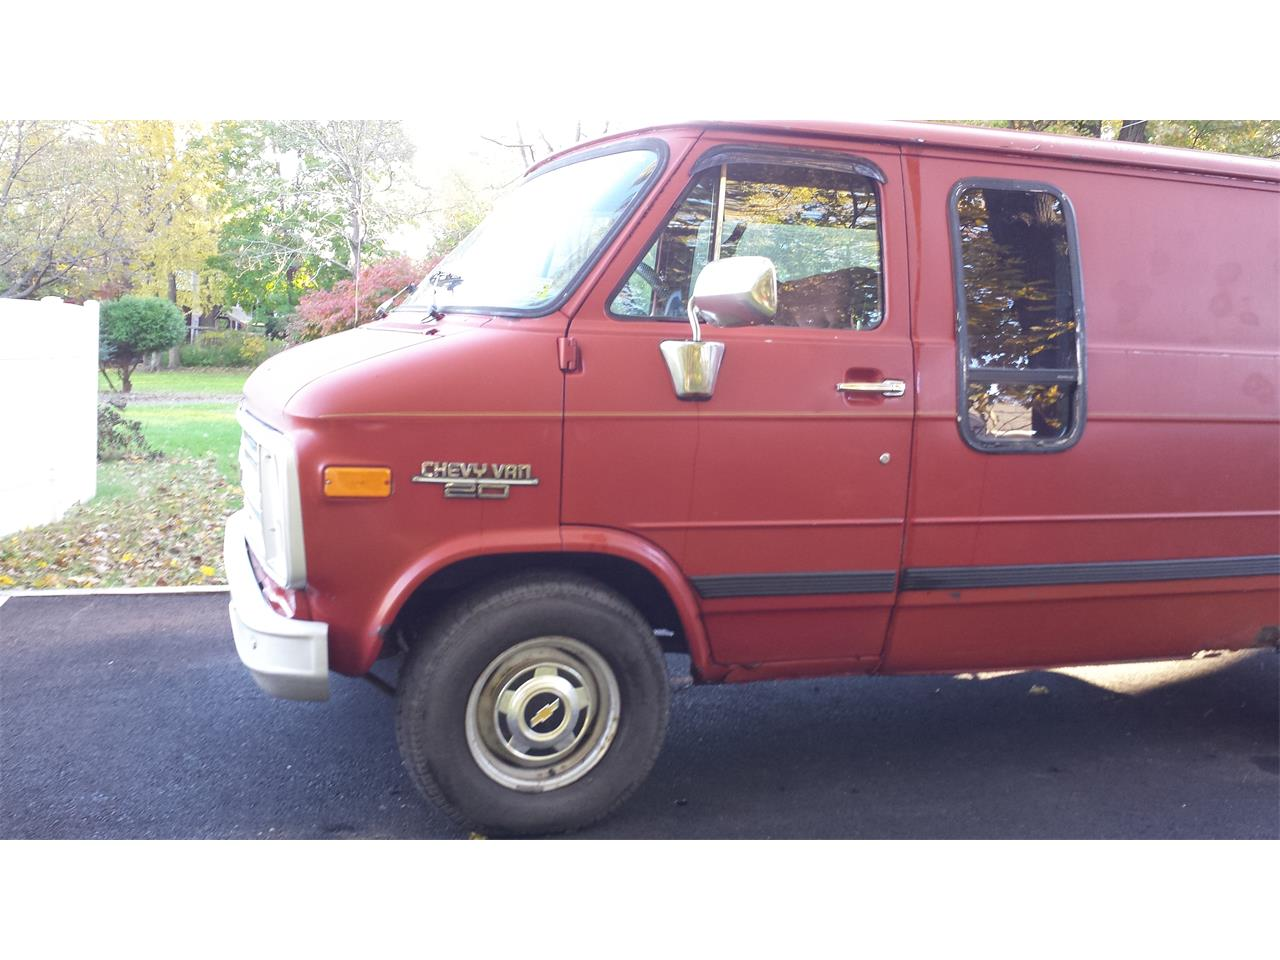 1988 Chevrolet G20 for sale in Carmel, NY – photo 2